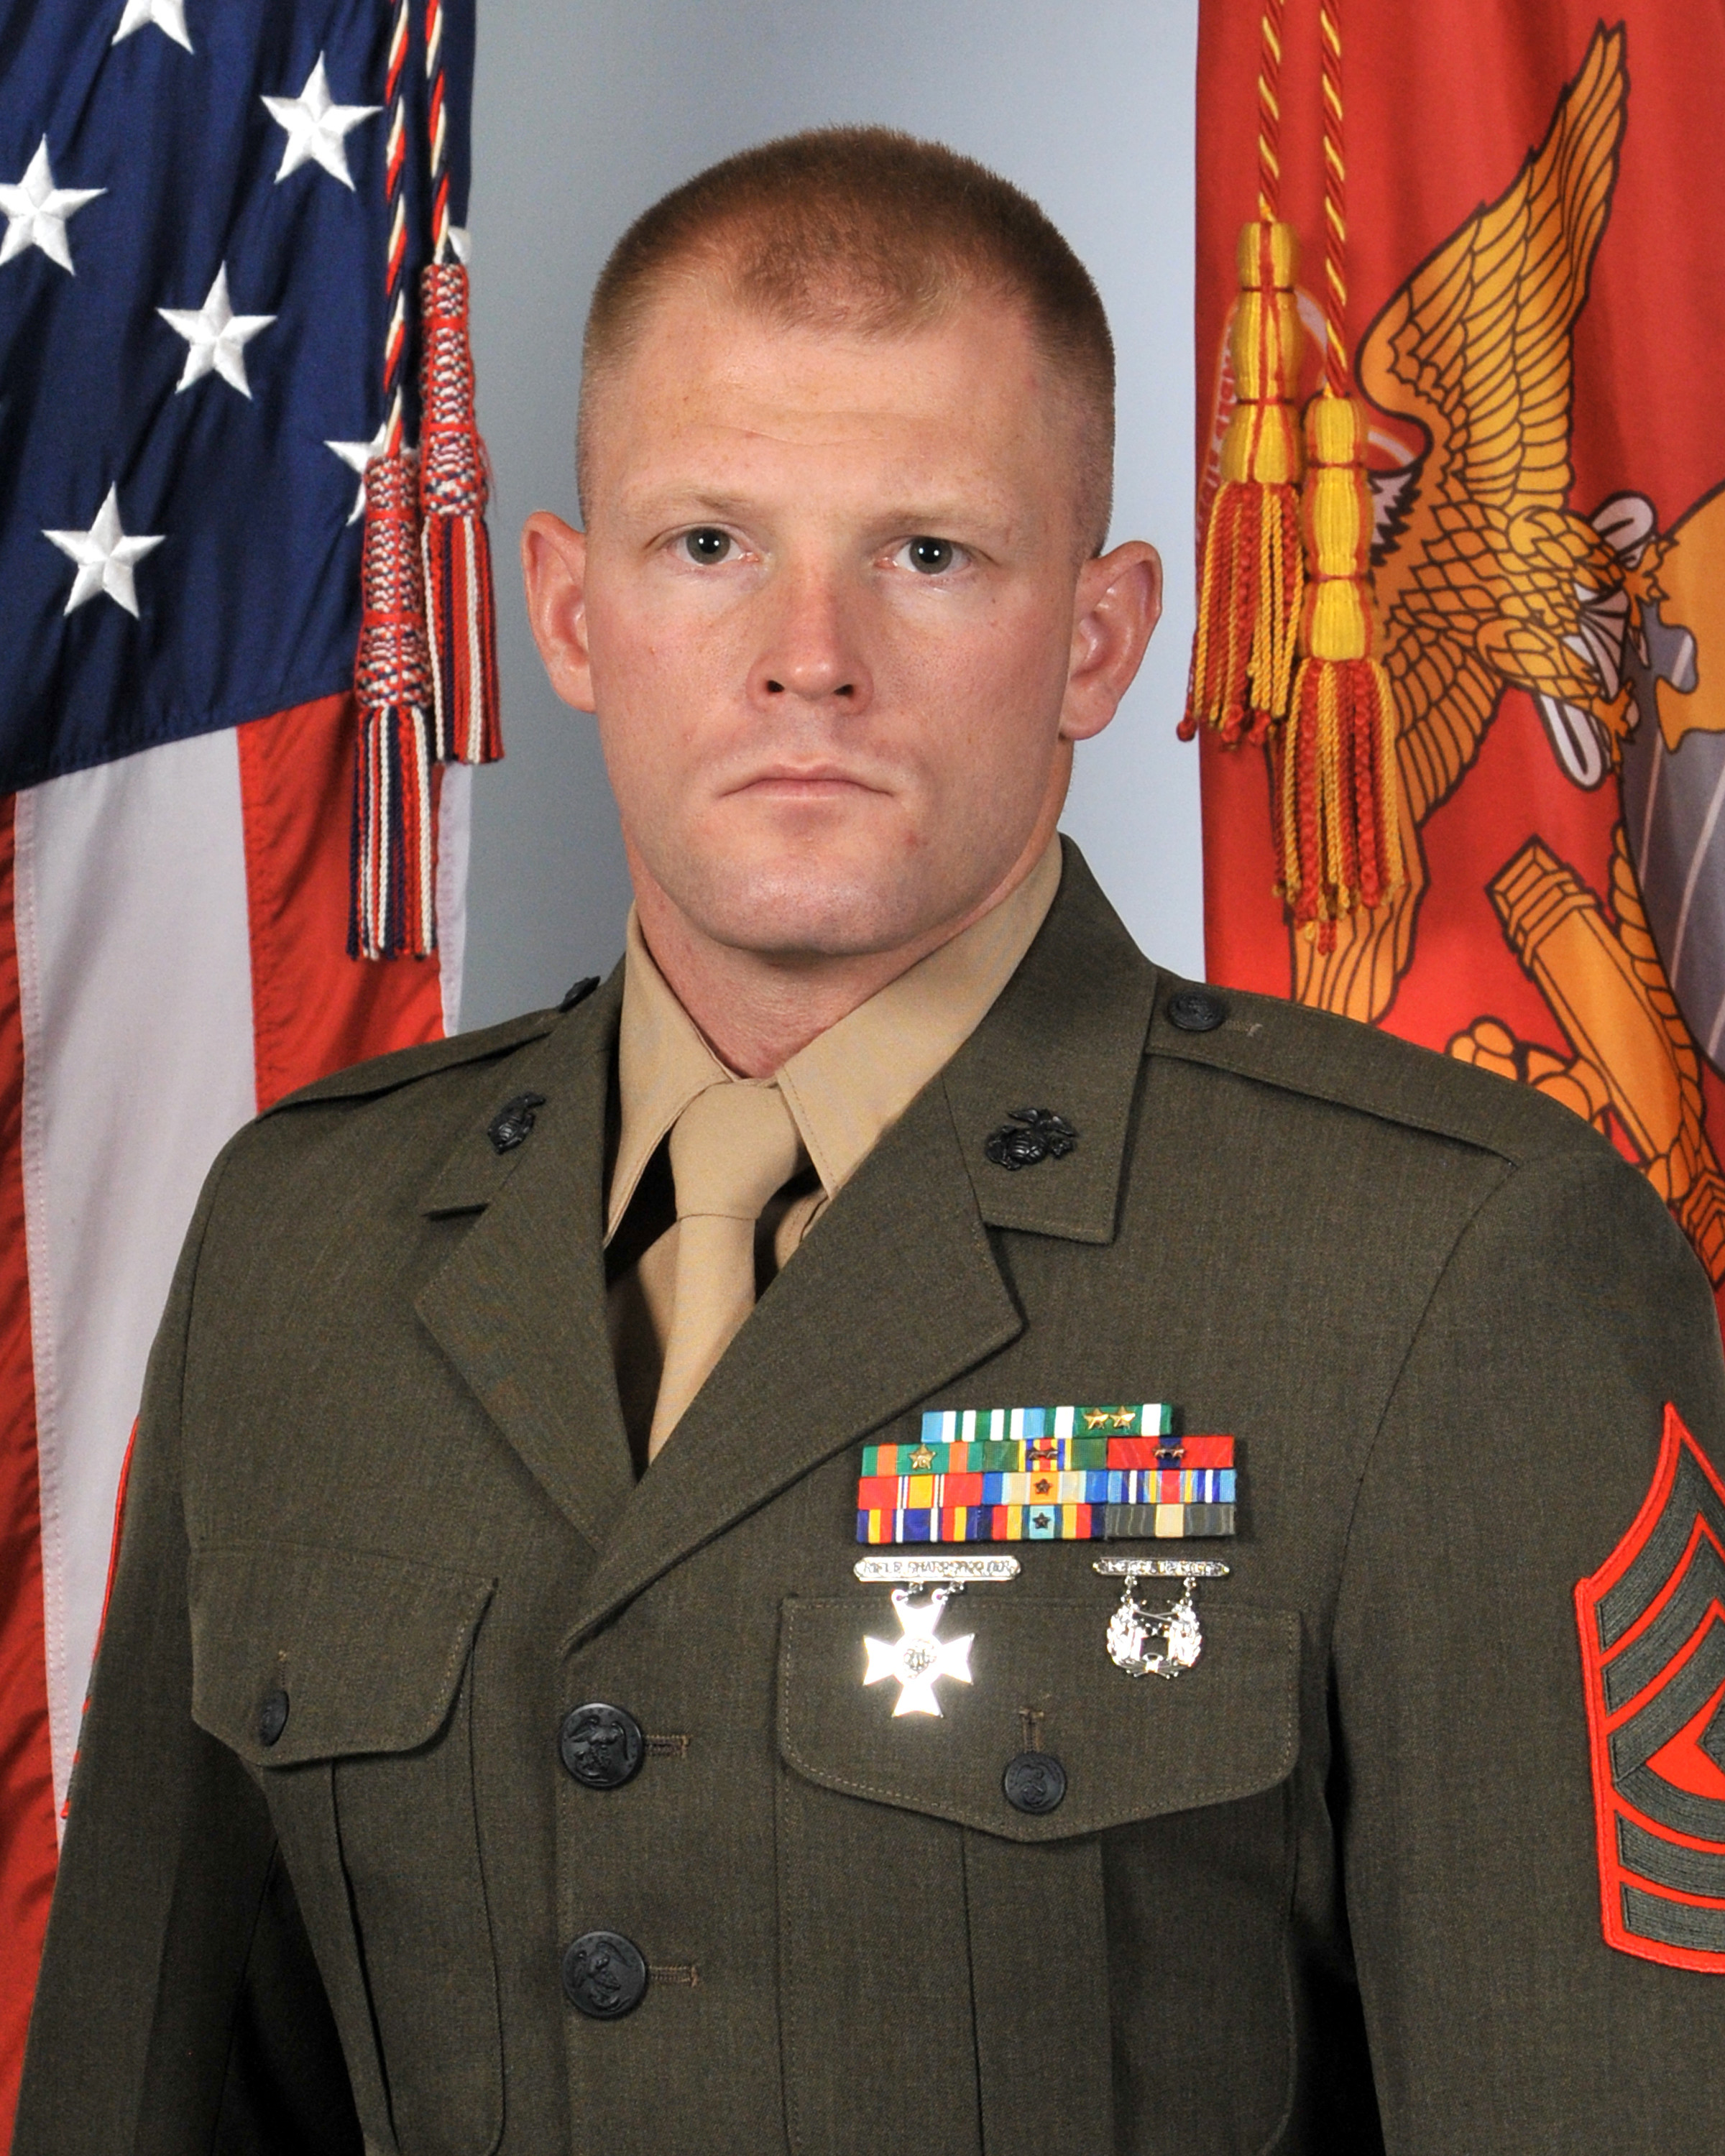 22cbf74e5 First Sergeant Croft enlisted in the Marine Corps in March of 2007 and  began Recruit Training at Parris Island